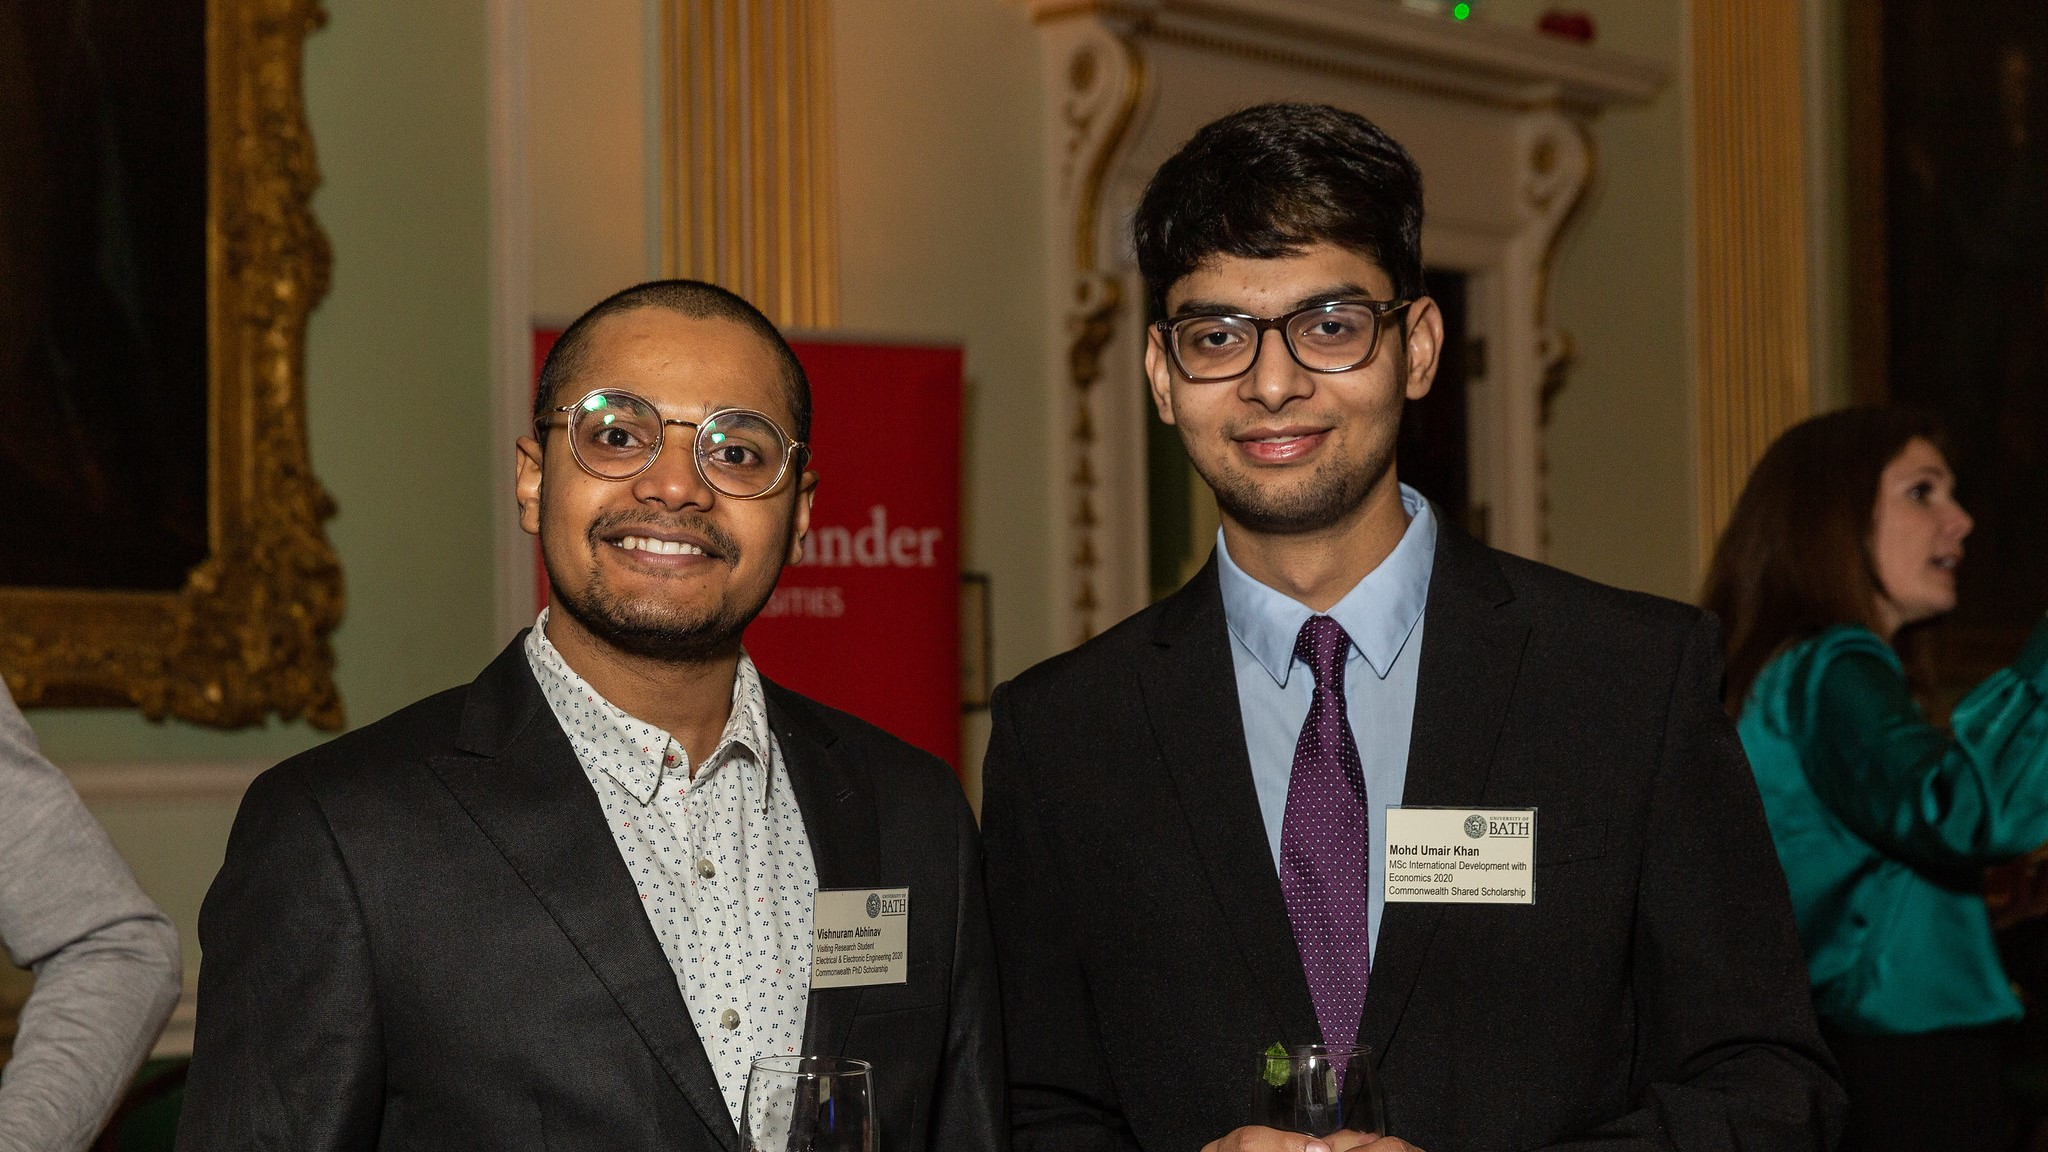 Two scholars at a Scholarship Reception